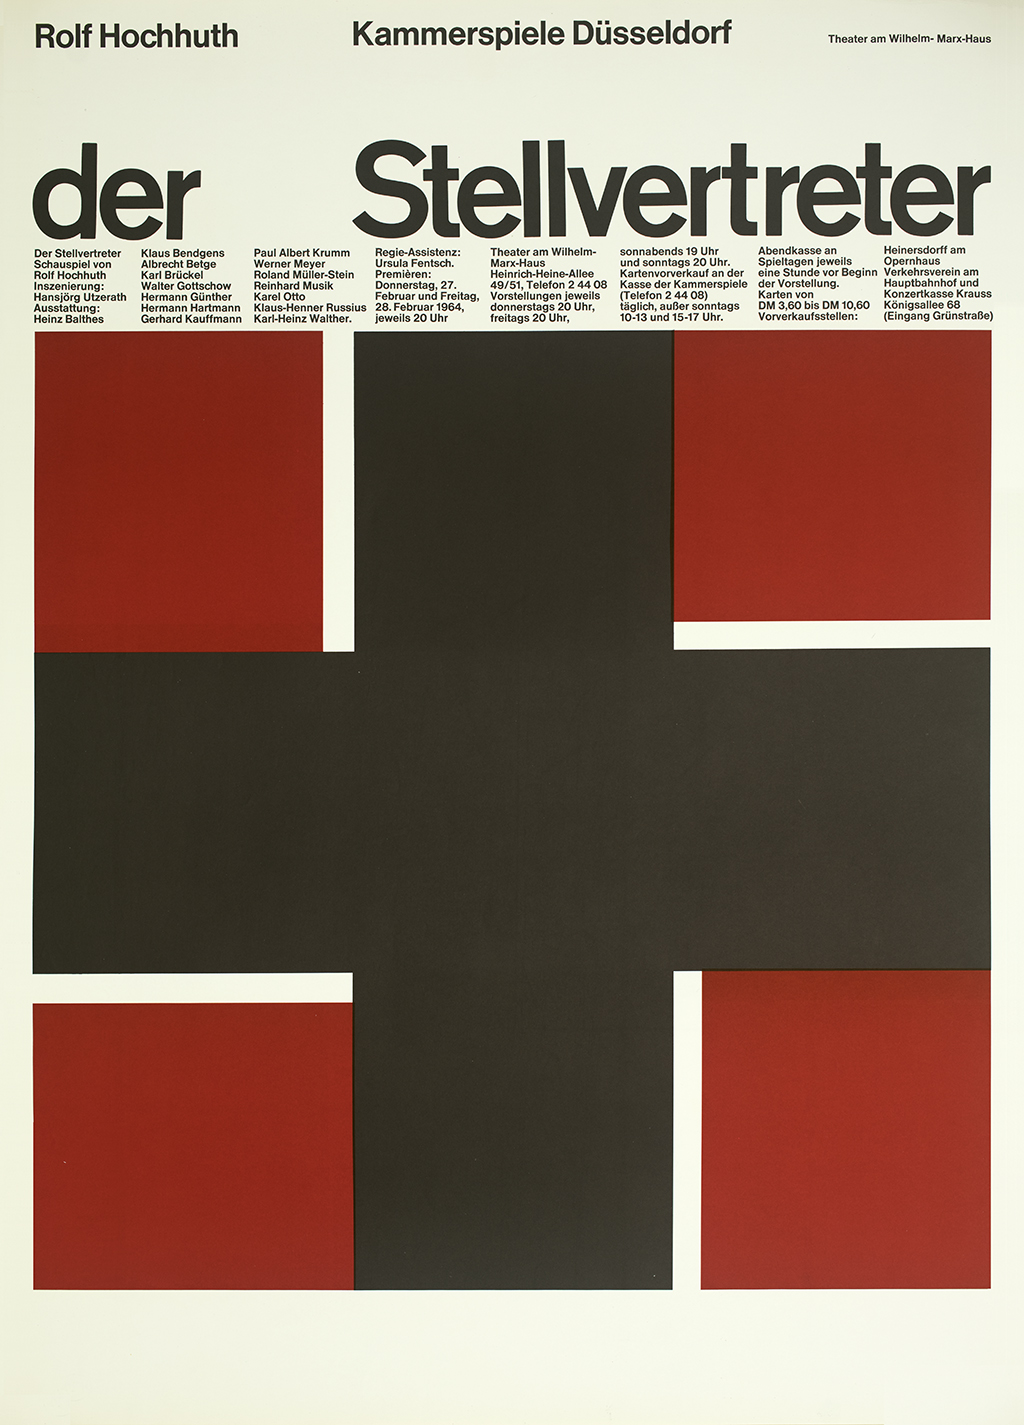 Block print of a black plus sign with four red squares arranged to suggest a swastika.